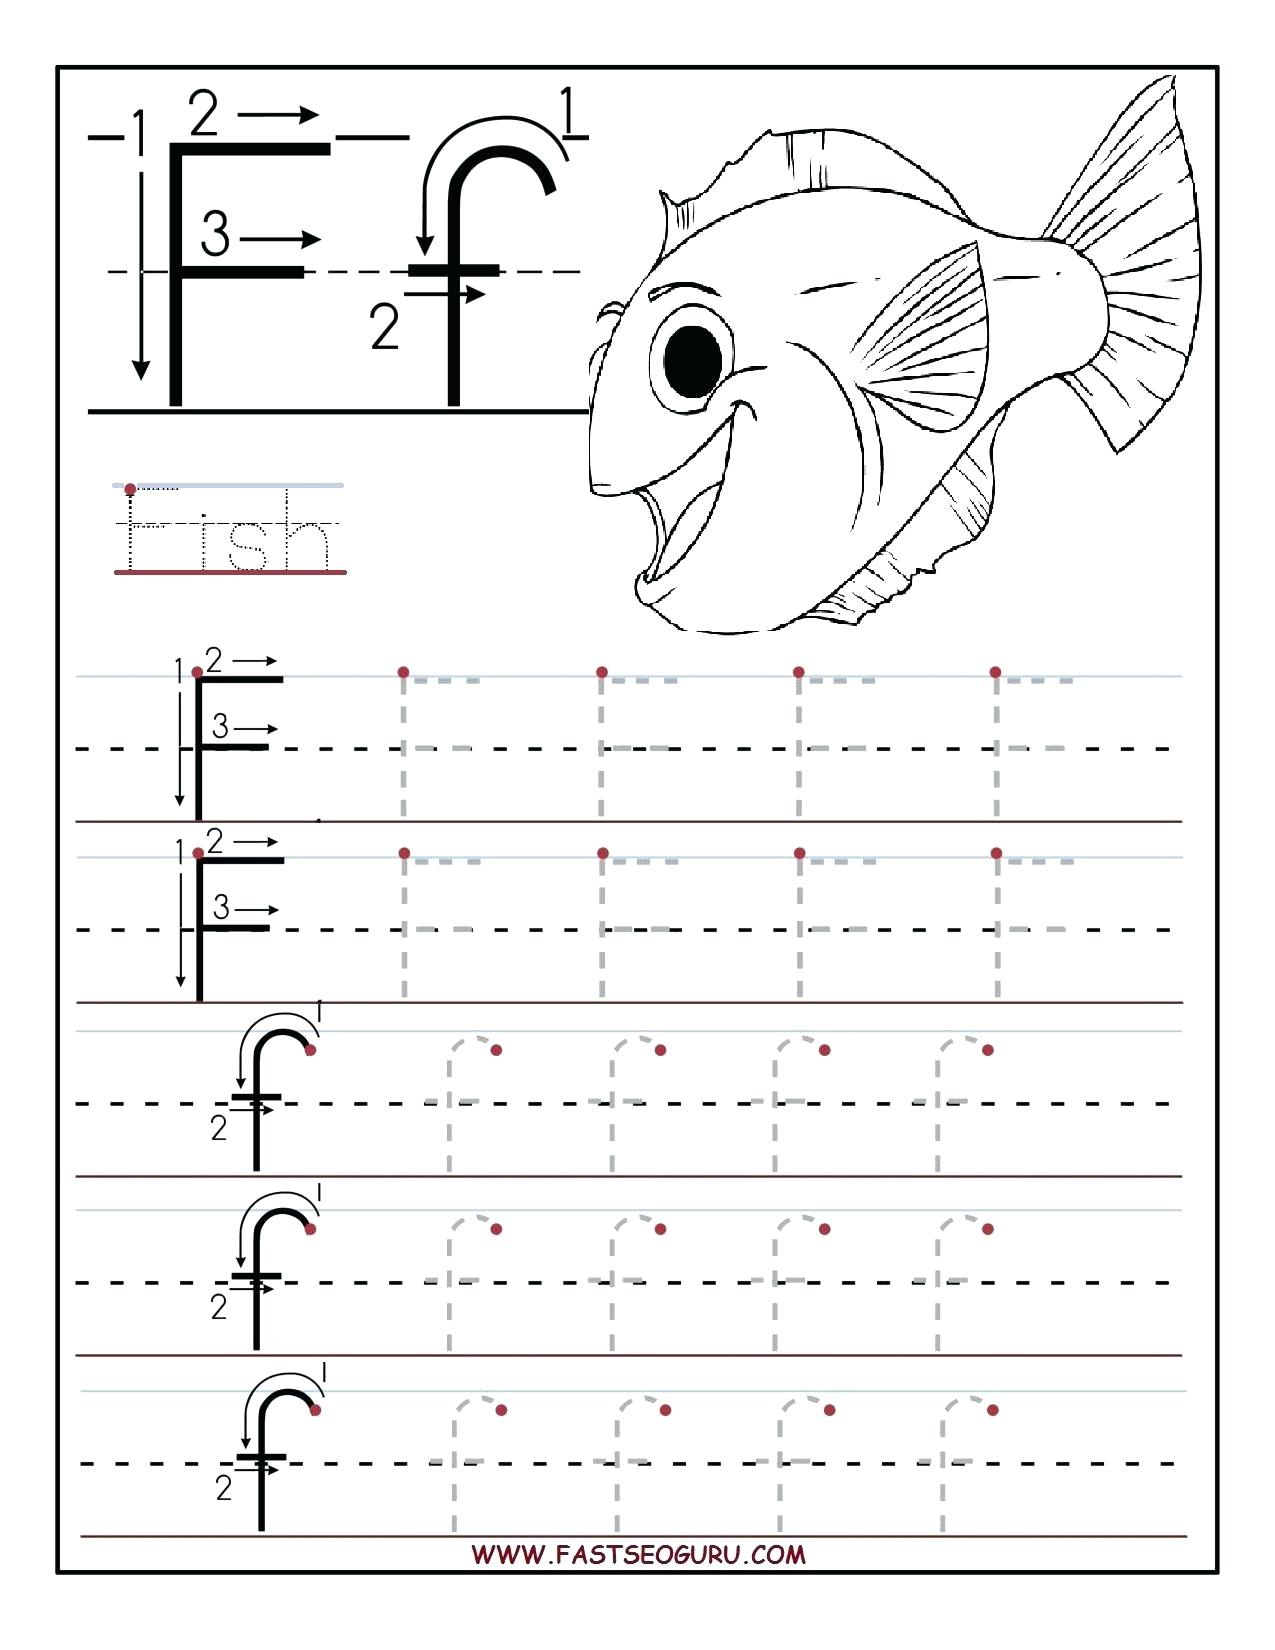 15 Useful Letter F Worksheets For Toddlers